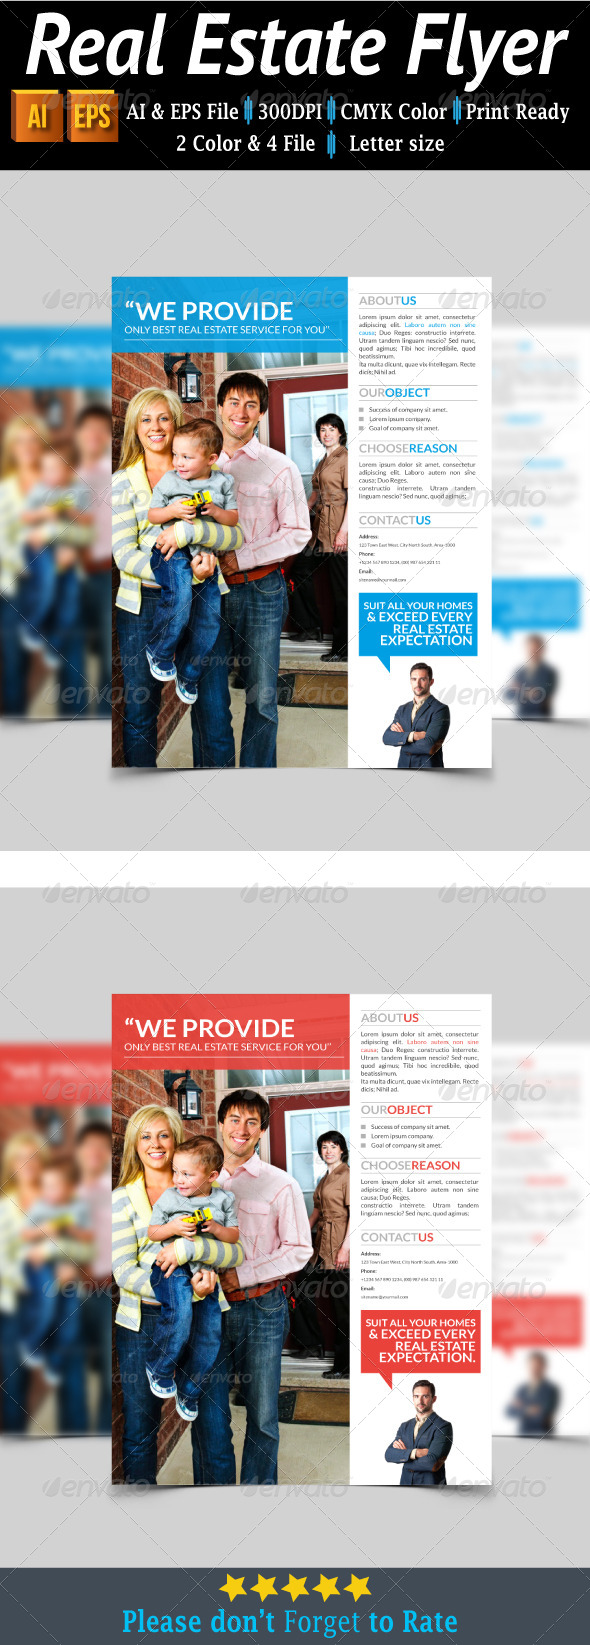 GraphicRiver Real Estate Flyer 7811841